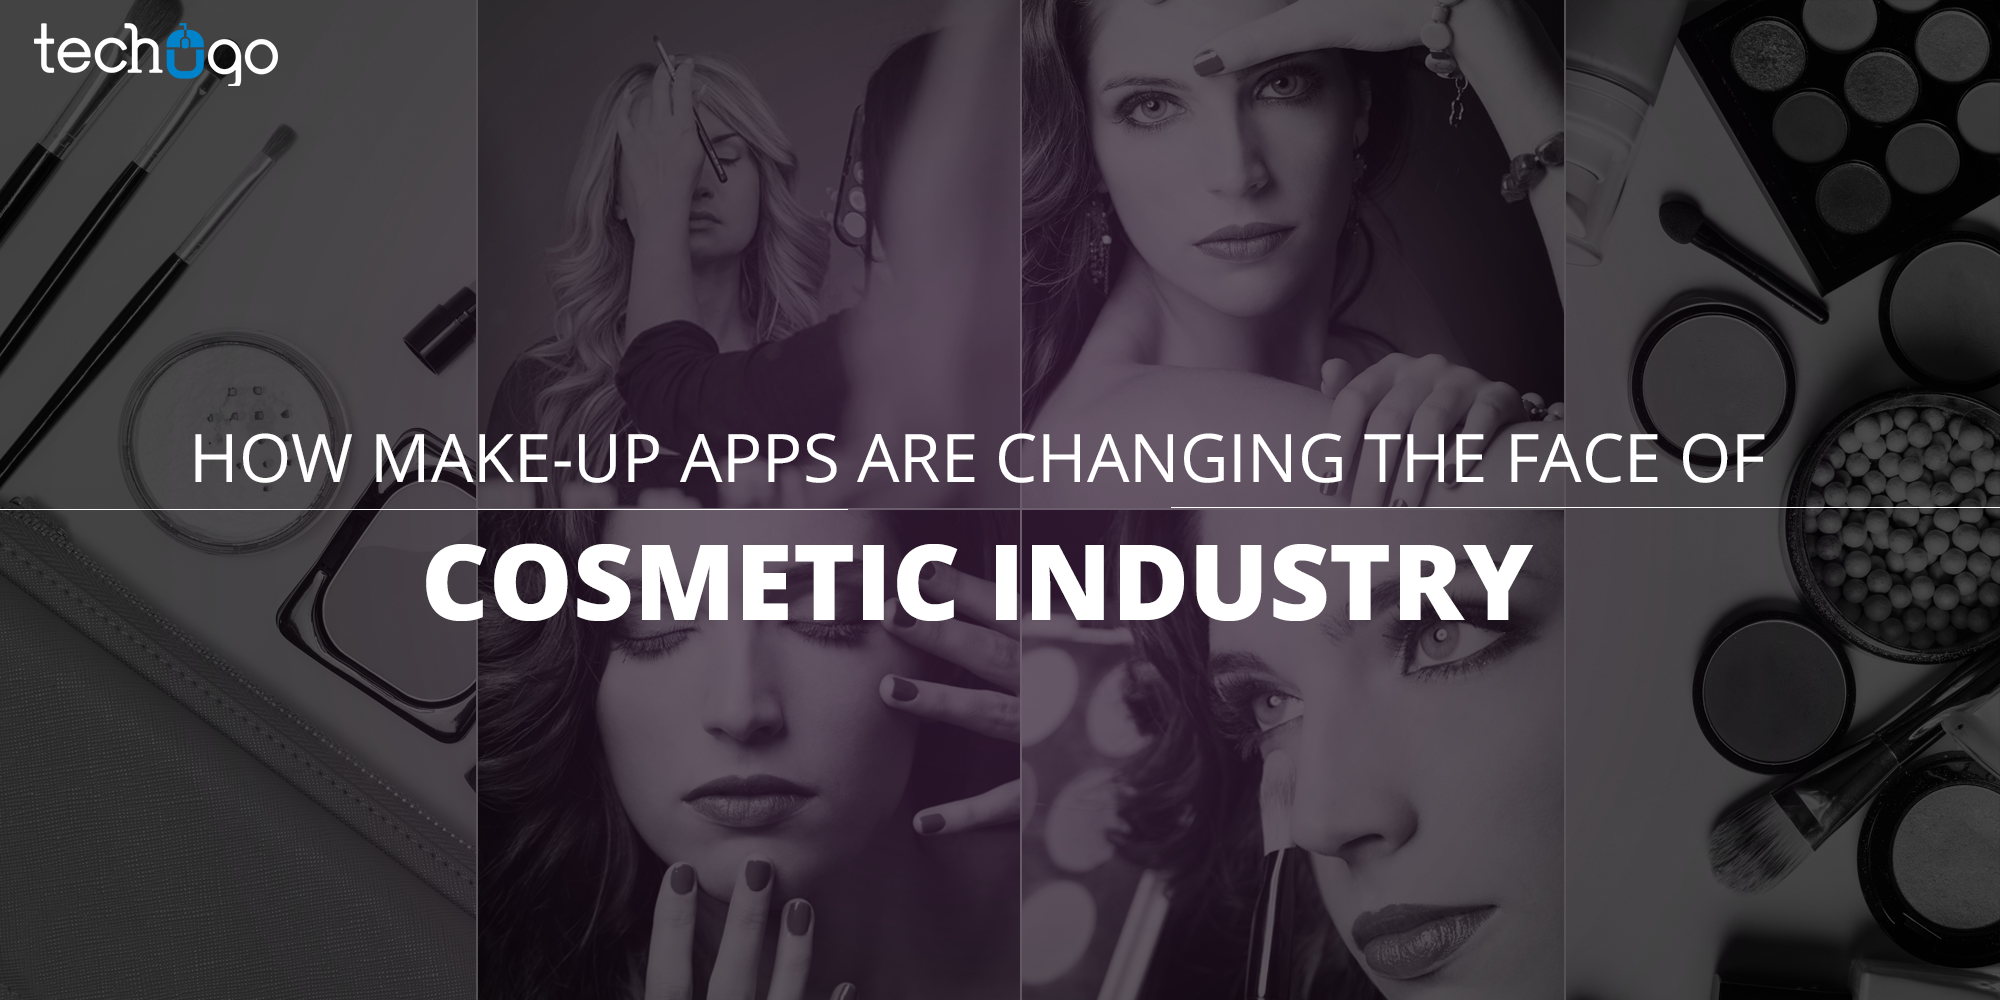 How Make-Up Apps Are Changing The Face Of Cosmetic Industry